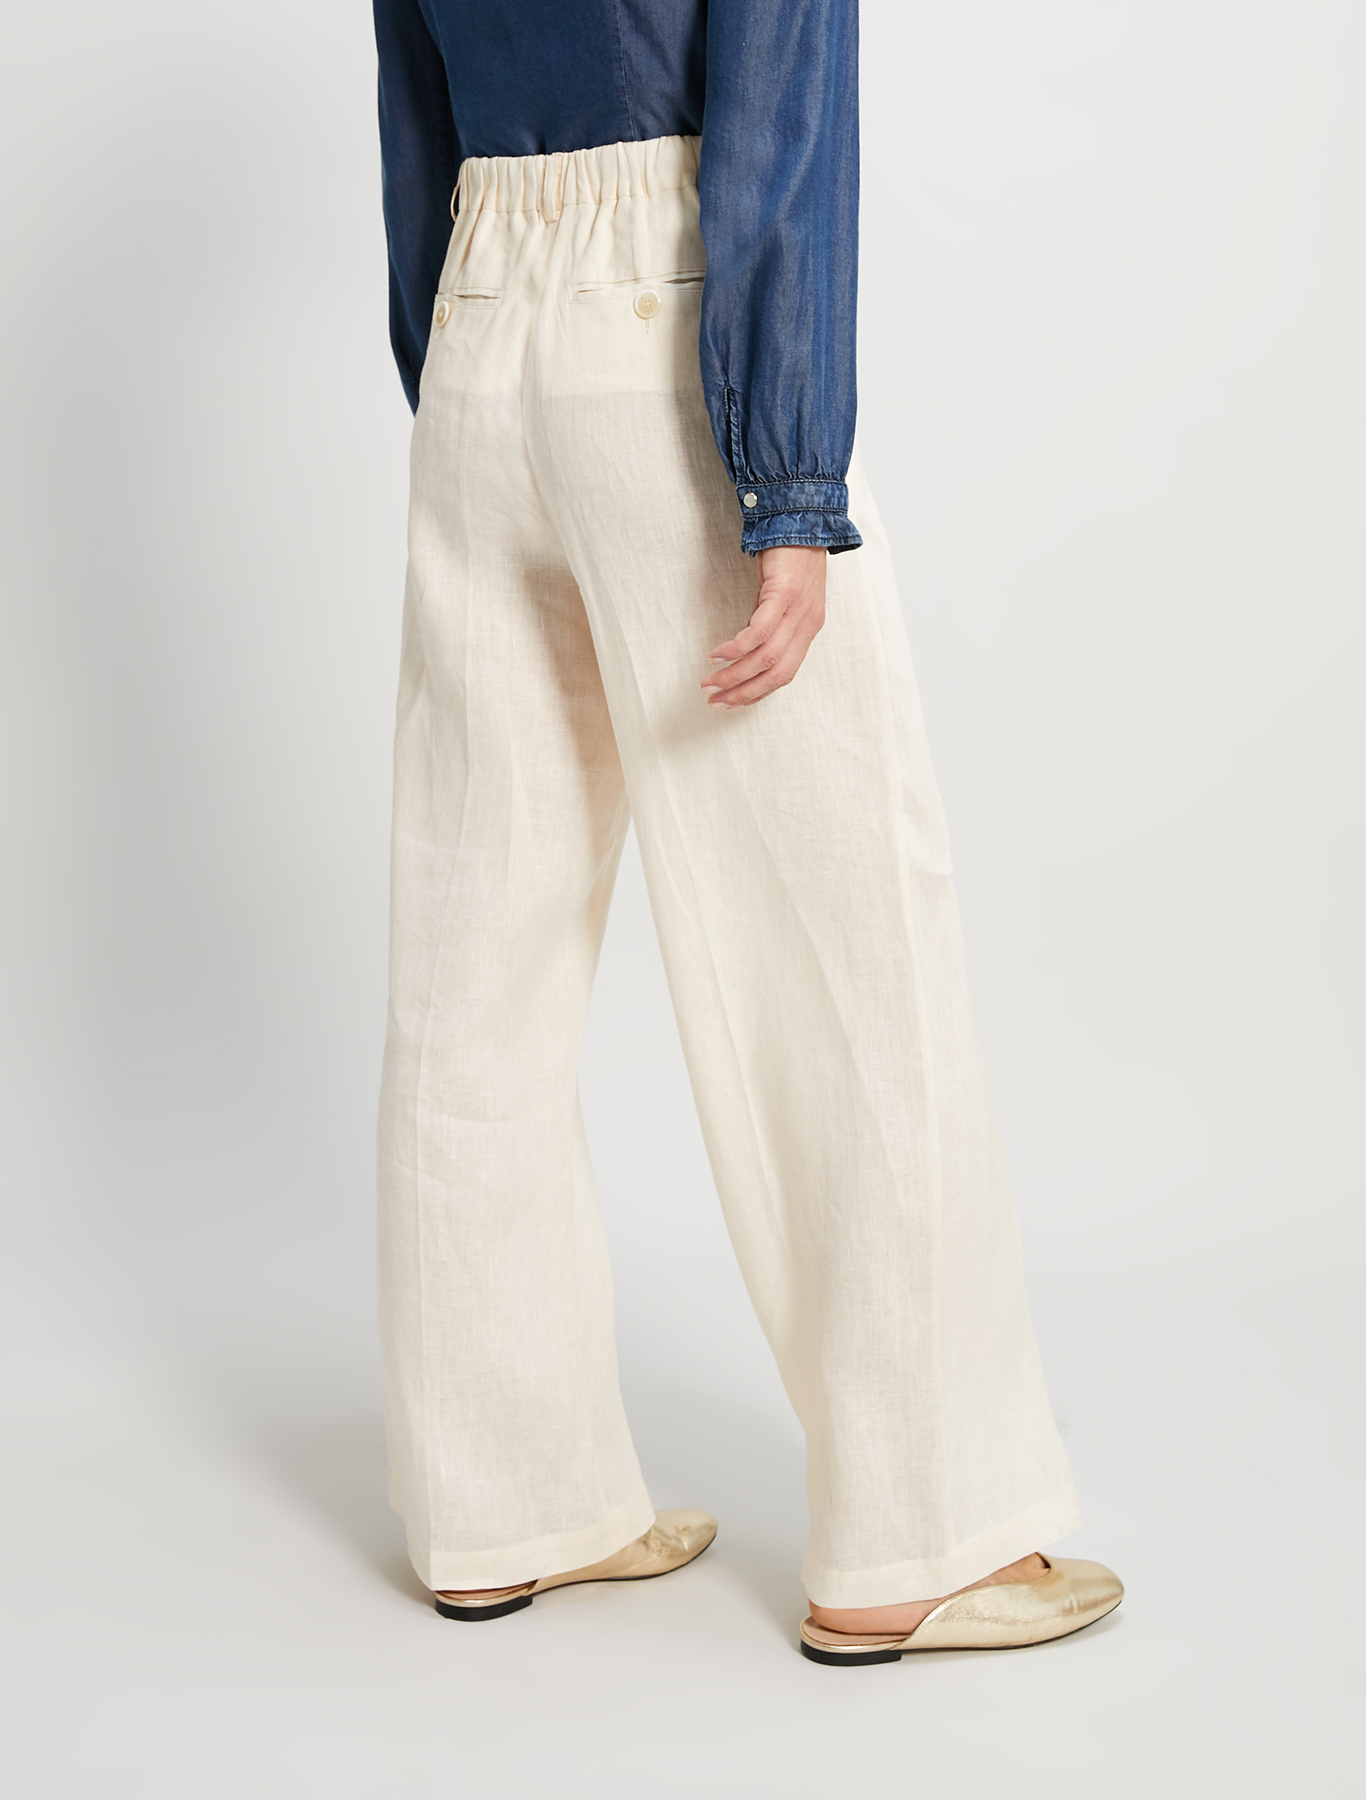 Pure linen trousers - ivory - pennyblack